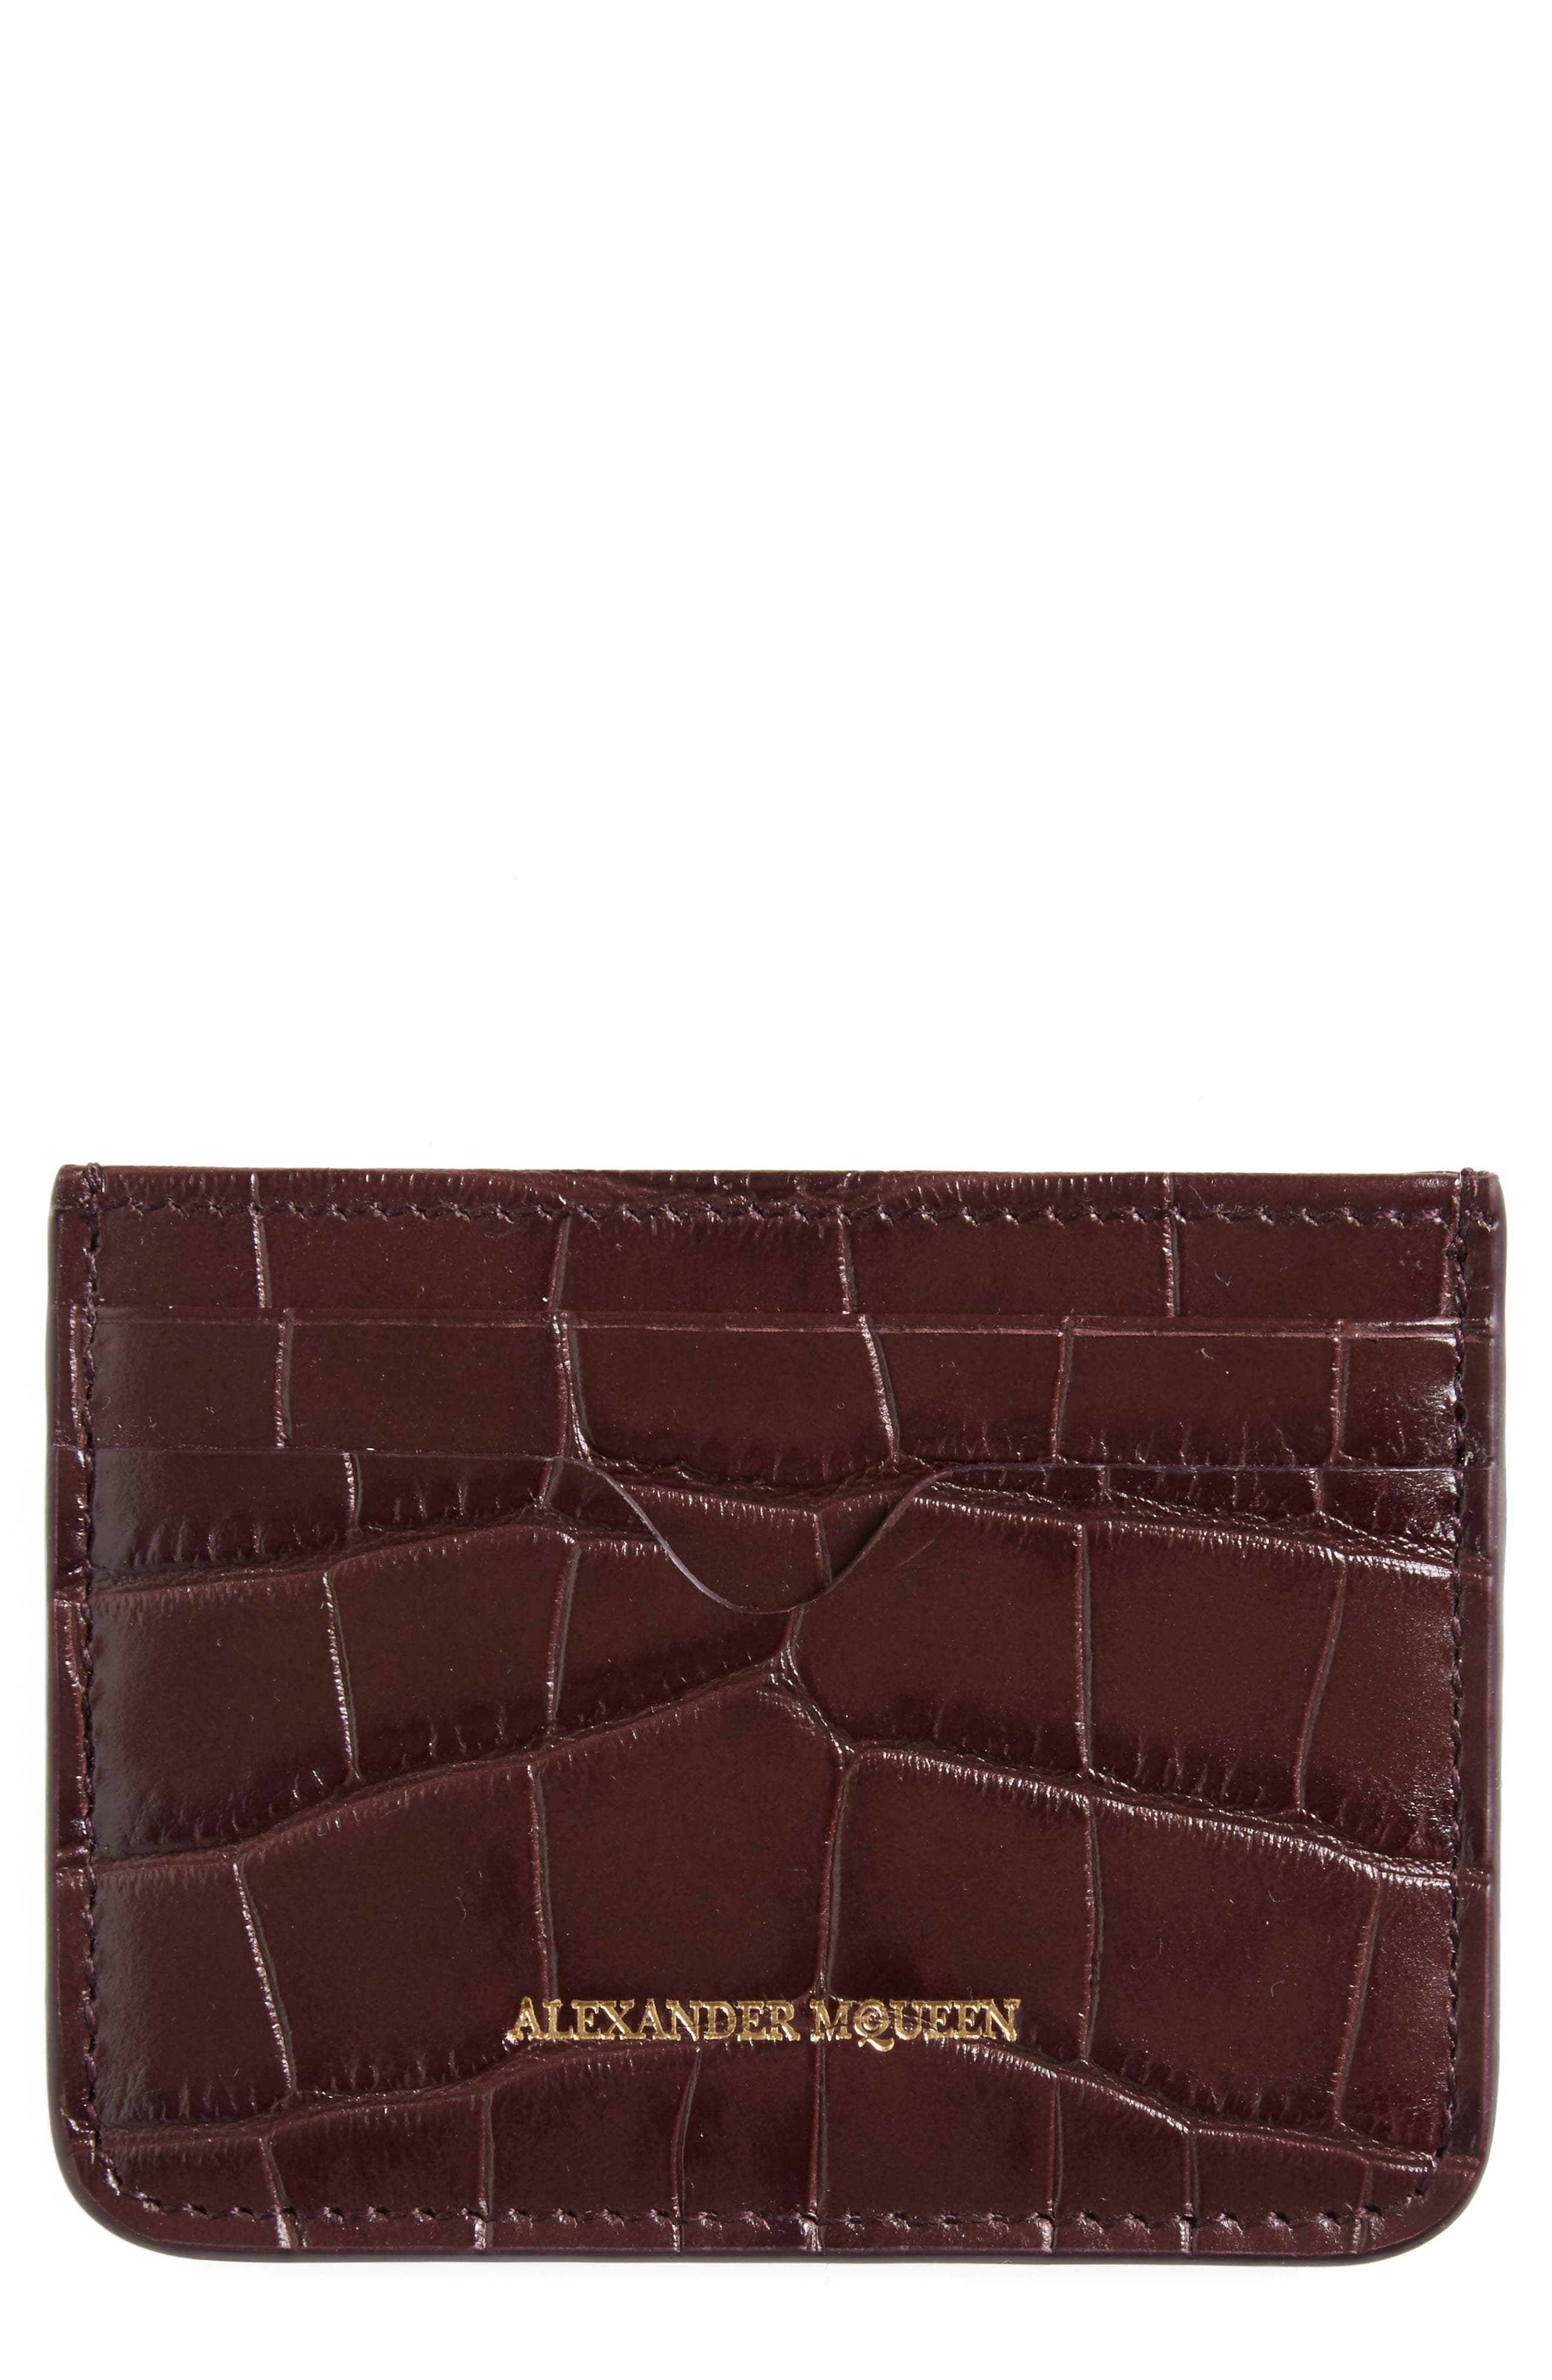 Alexander McQueen Croc Embossed Leather Card Holder